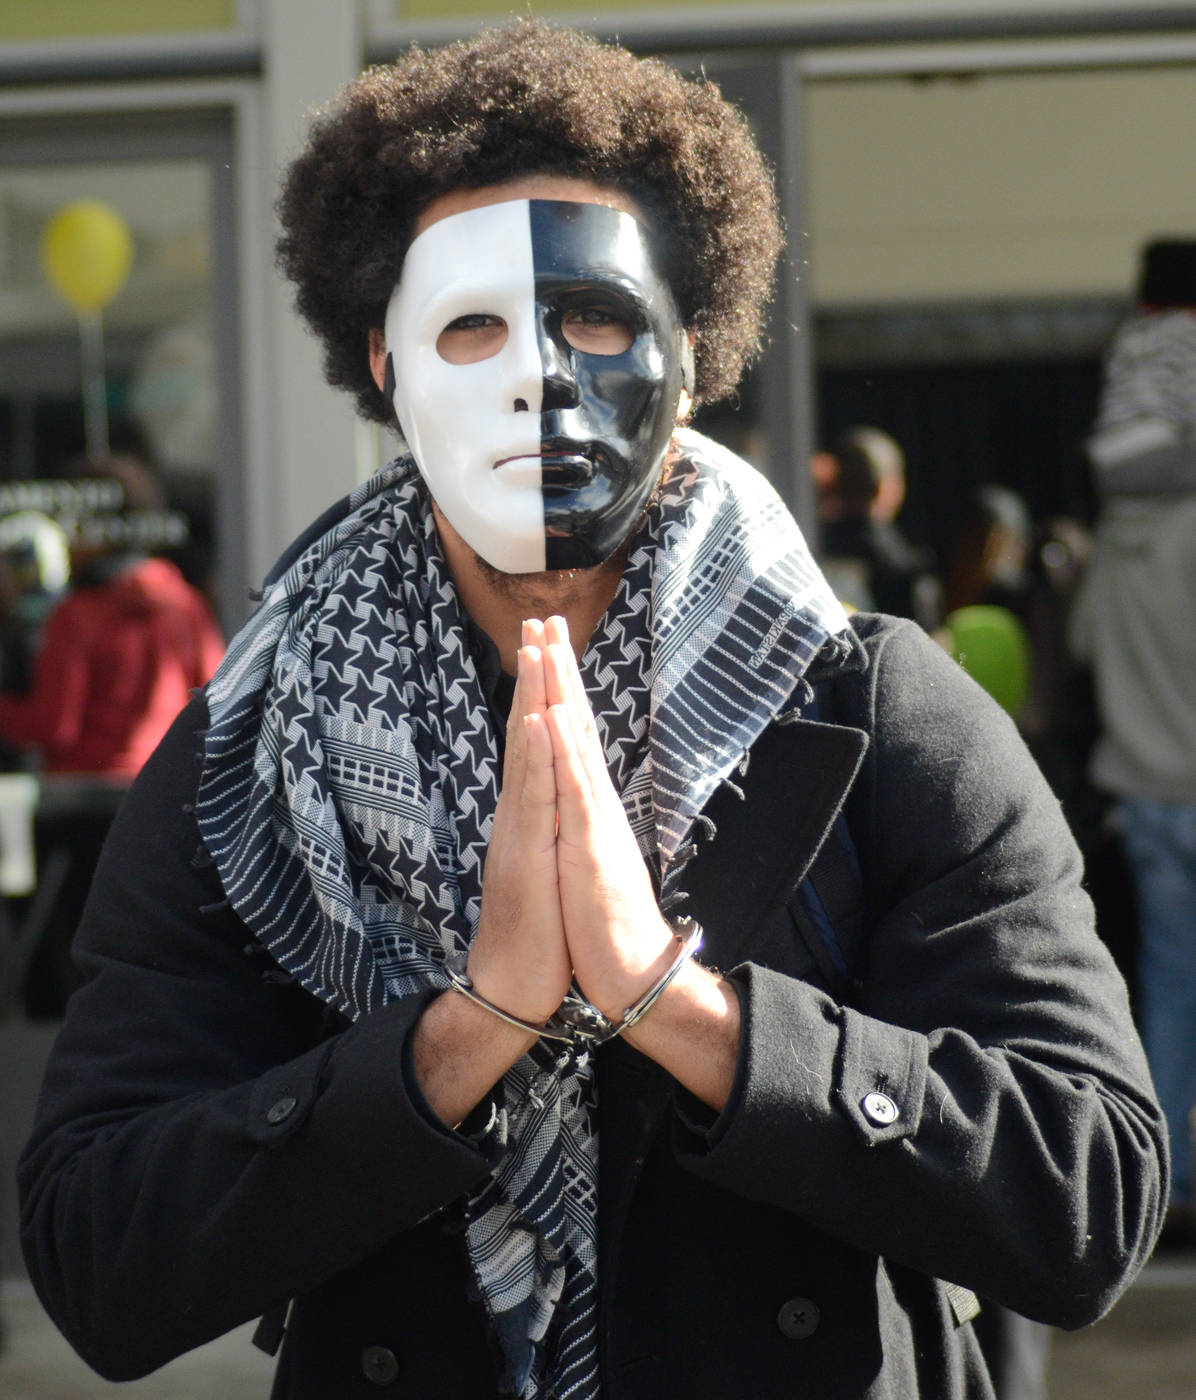 MLK March 1-18-16 Downtown Sacramento, CA. In front of Sacramento Convention Center. Jonathan Shaw wearing a white and black mask and handcuffs, posing for a photo. Chris Williams Staff Photographer. | Chriswexpress@gmail.com